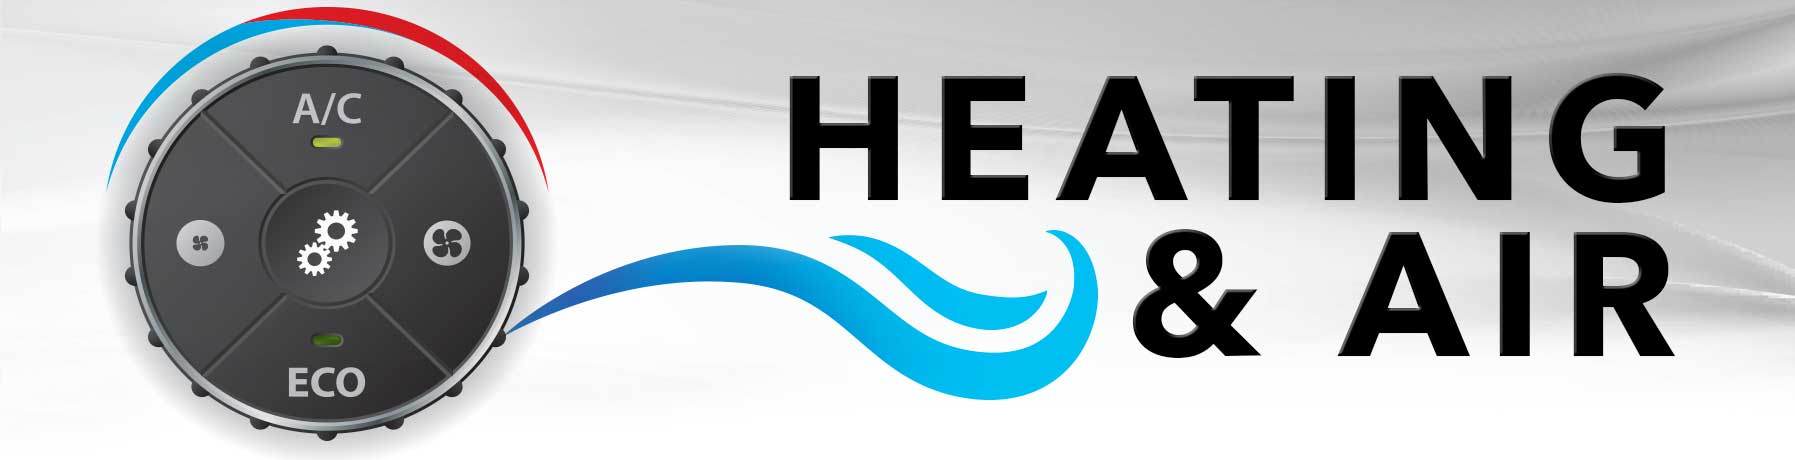 heating and air banner